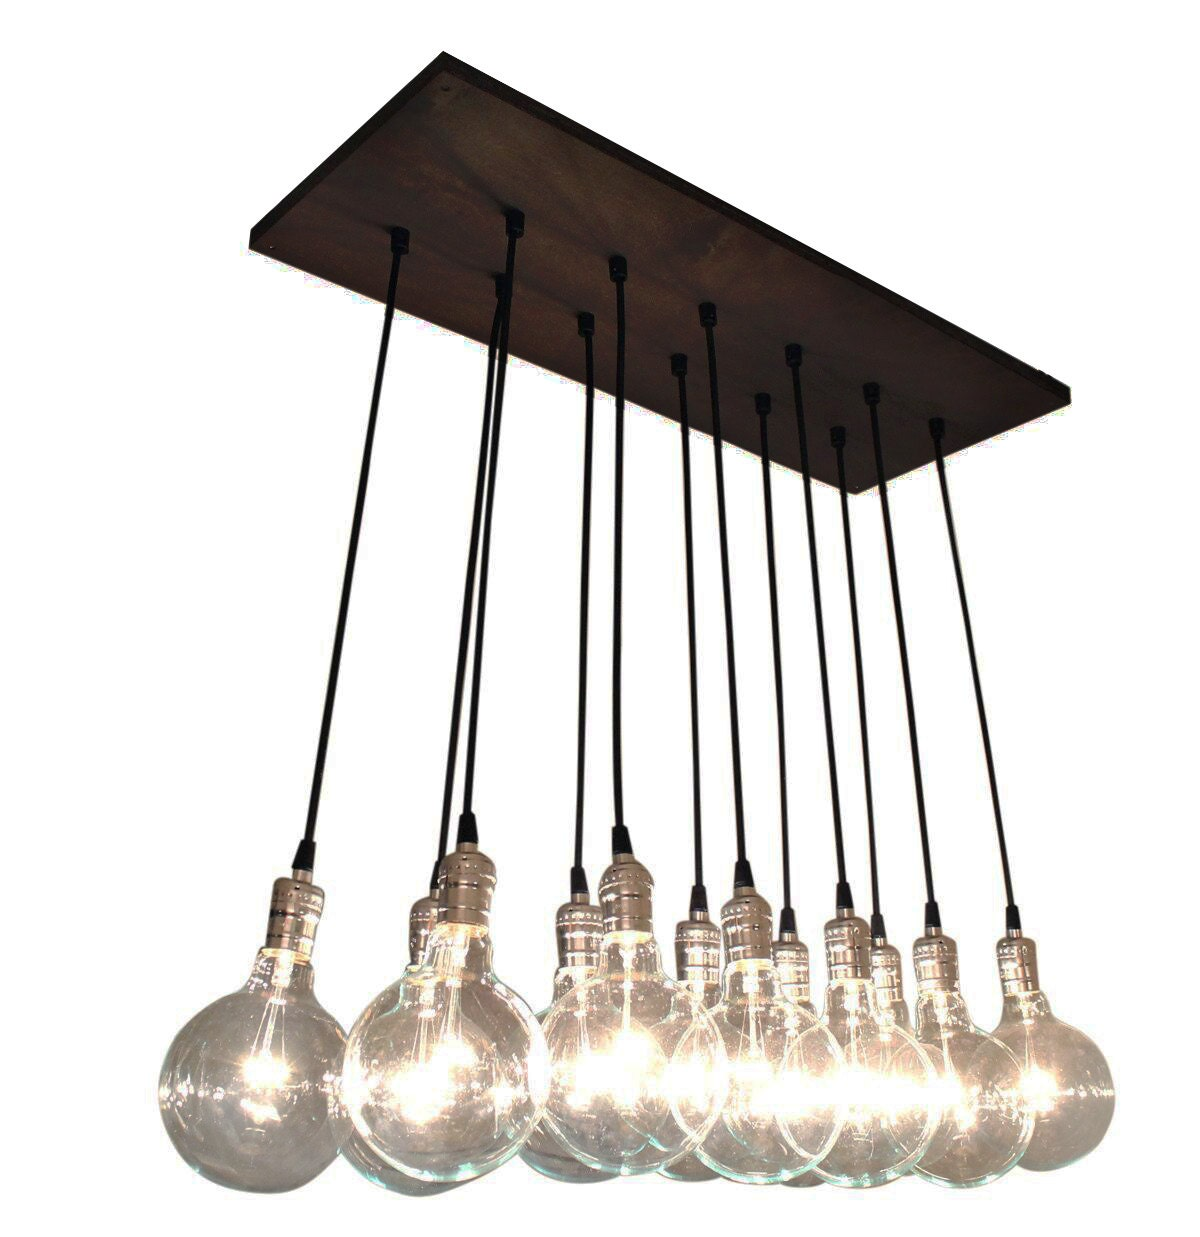 Urban chic chandelier with exposed bulbs kitchen lighting zoom arubaitofo Gallery